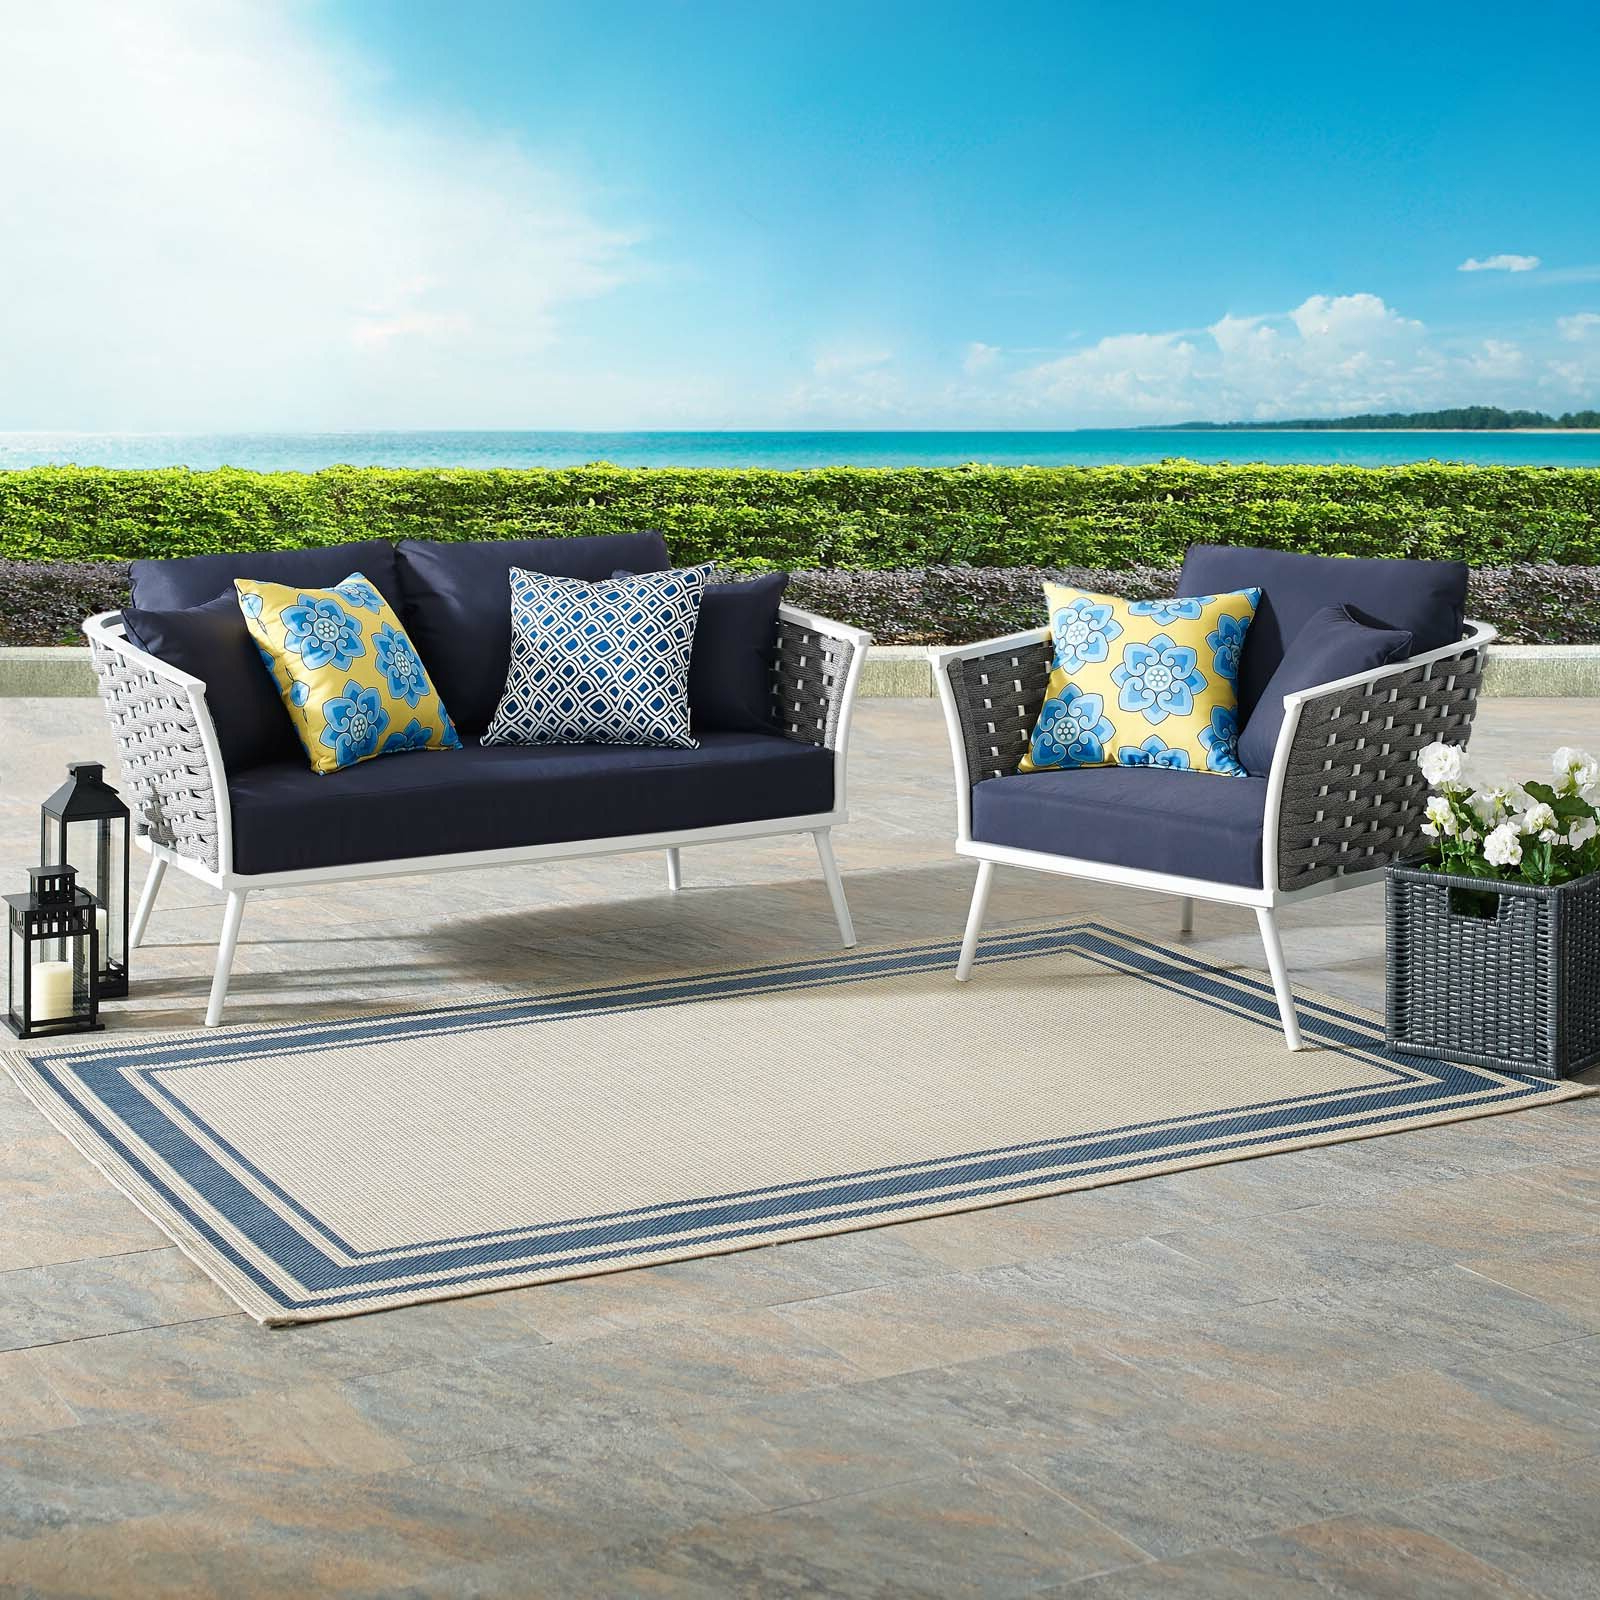 2019 Rossville Outdoor Patio Sofas With Cushions With Regard To Rossville 2 Piece Sofa Seating Group With Cushions (Gallery 7 of 25)